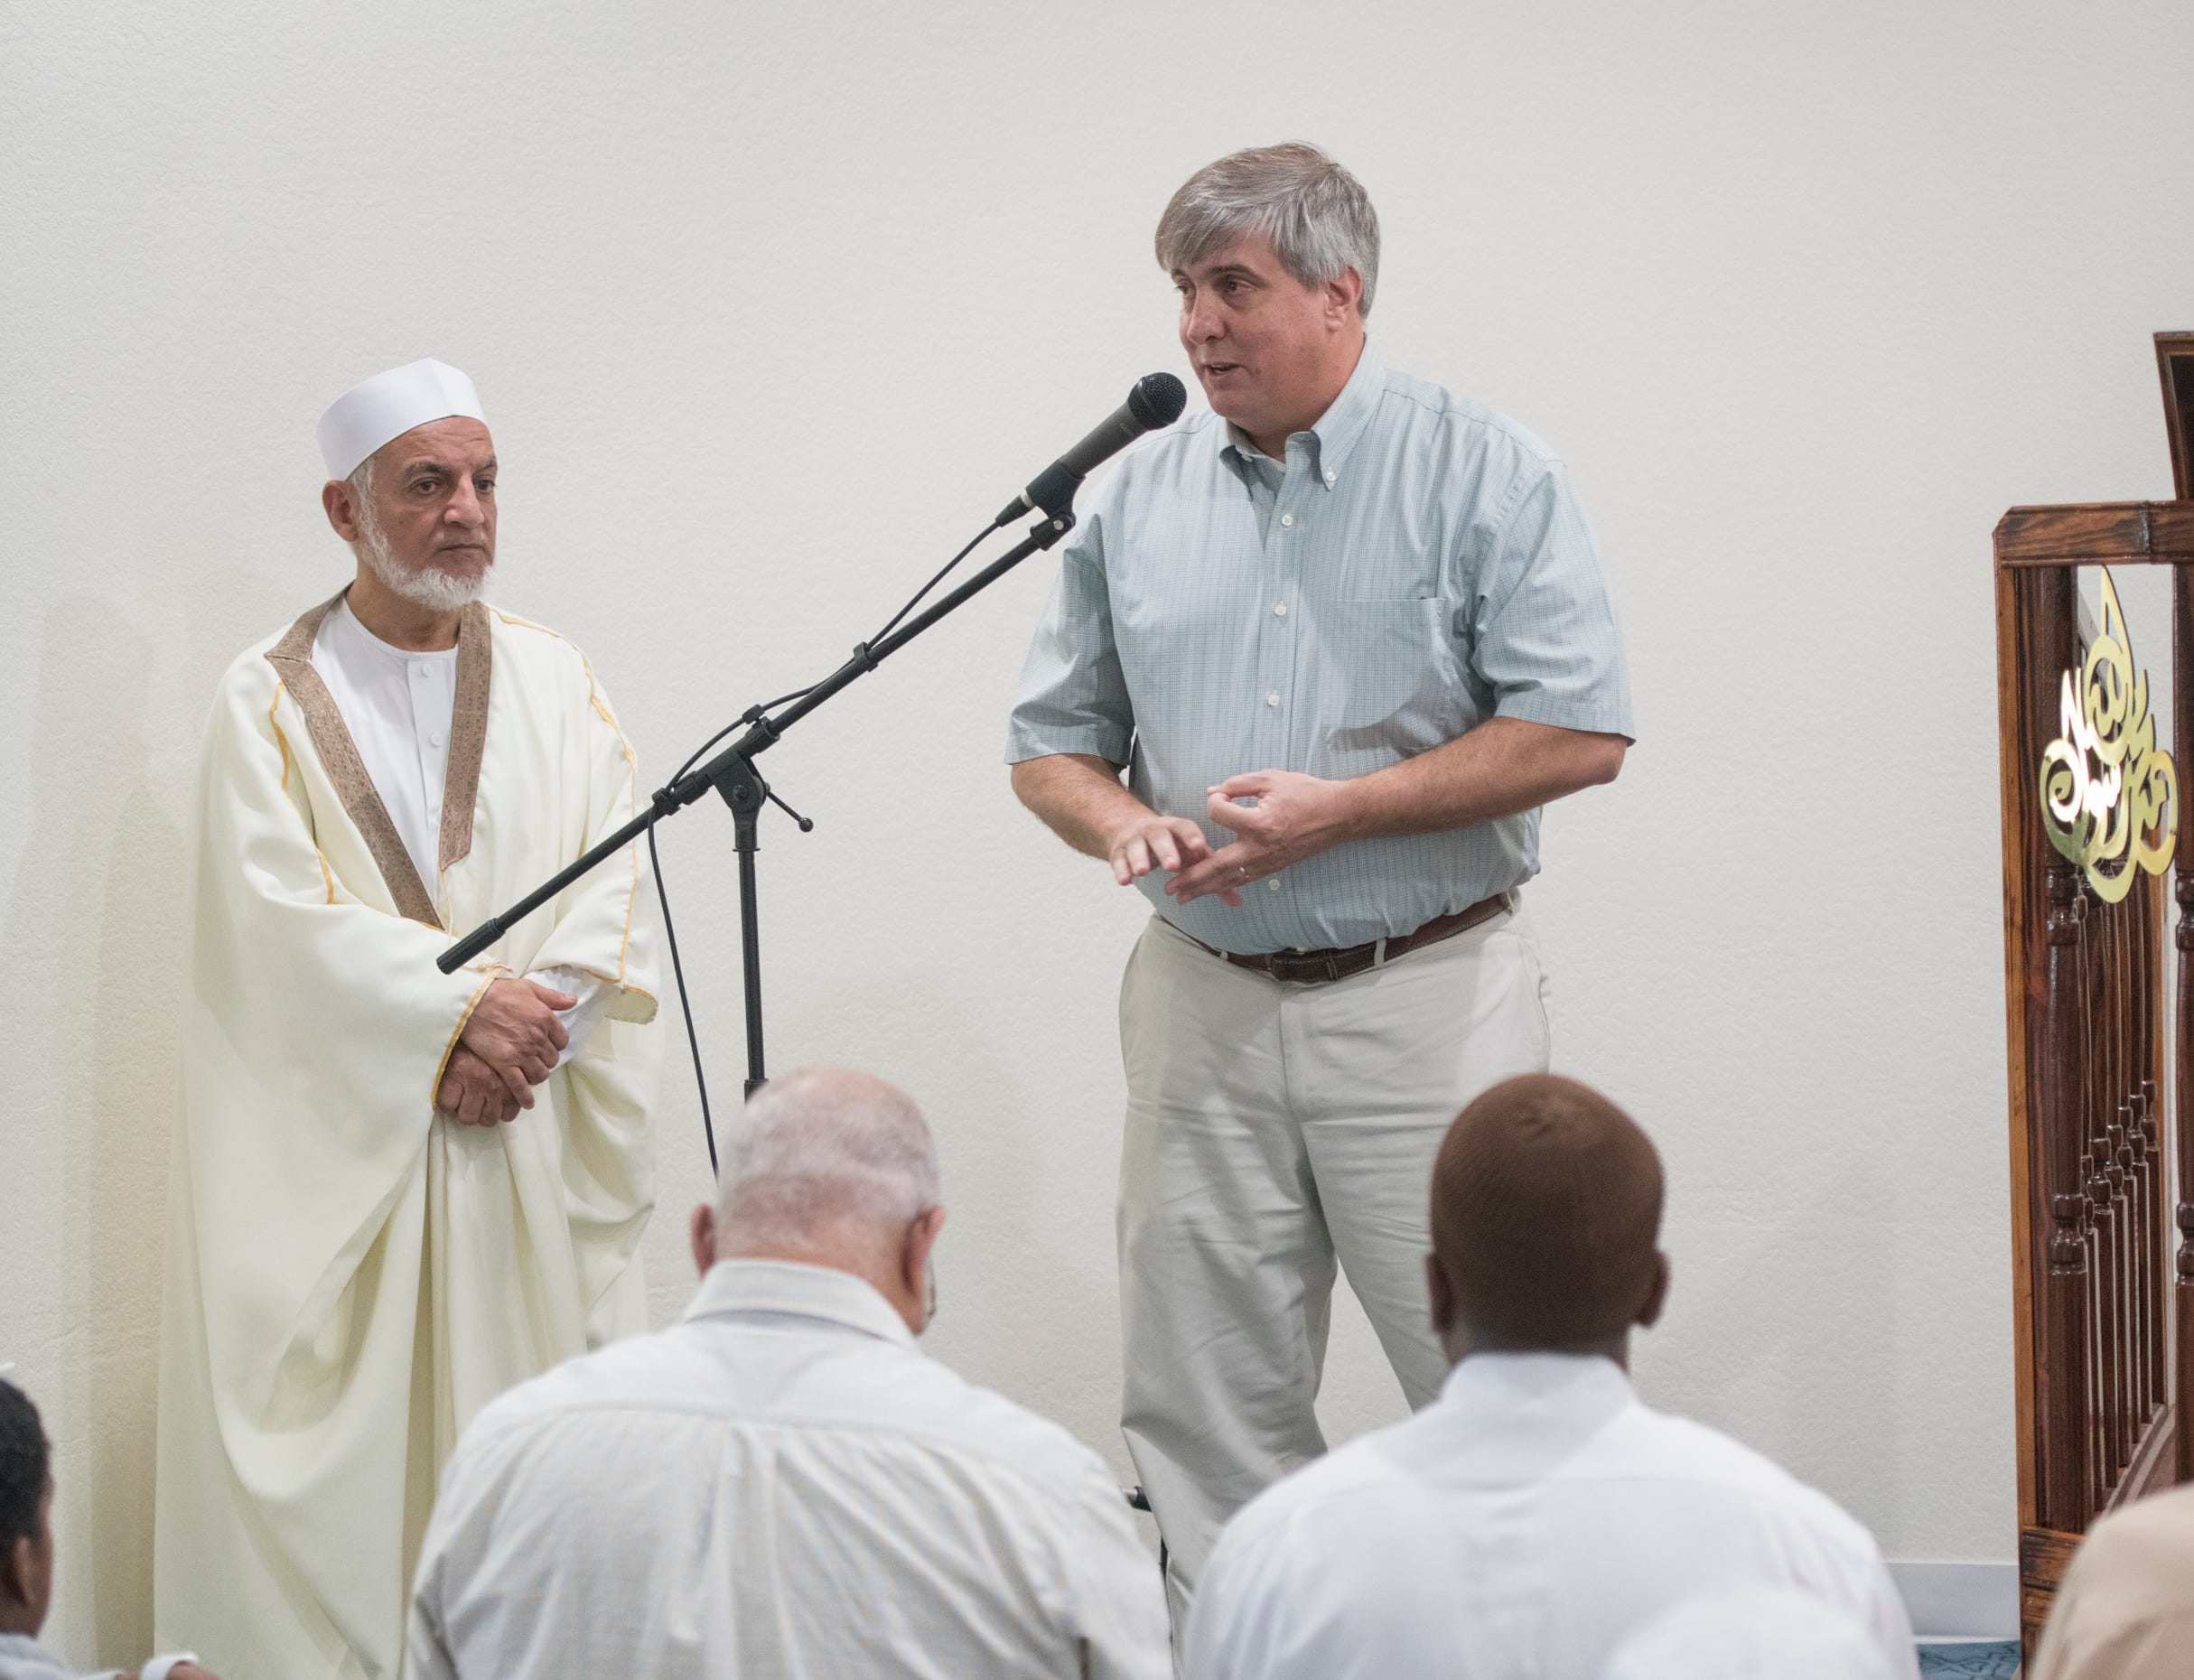 Pensacola Mayor Grover Robinson speaks to the congregation during Jumu'ah (Friday Prayer) at the Islamic Center of Northwest Florida in Pensacola on Friday, March 15, 2019.  The Mayor expressed his support for the Muslim community following the New Zealand mosque massacre.